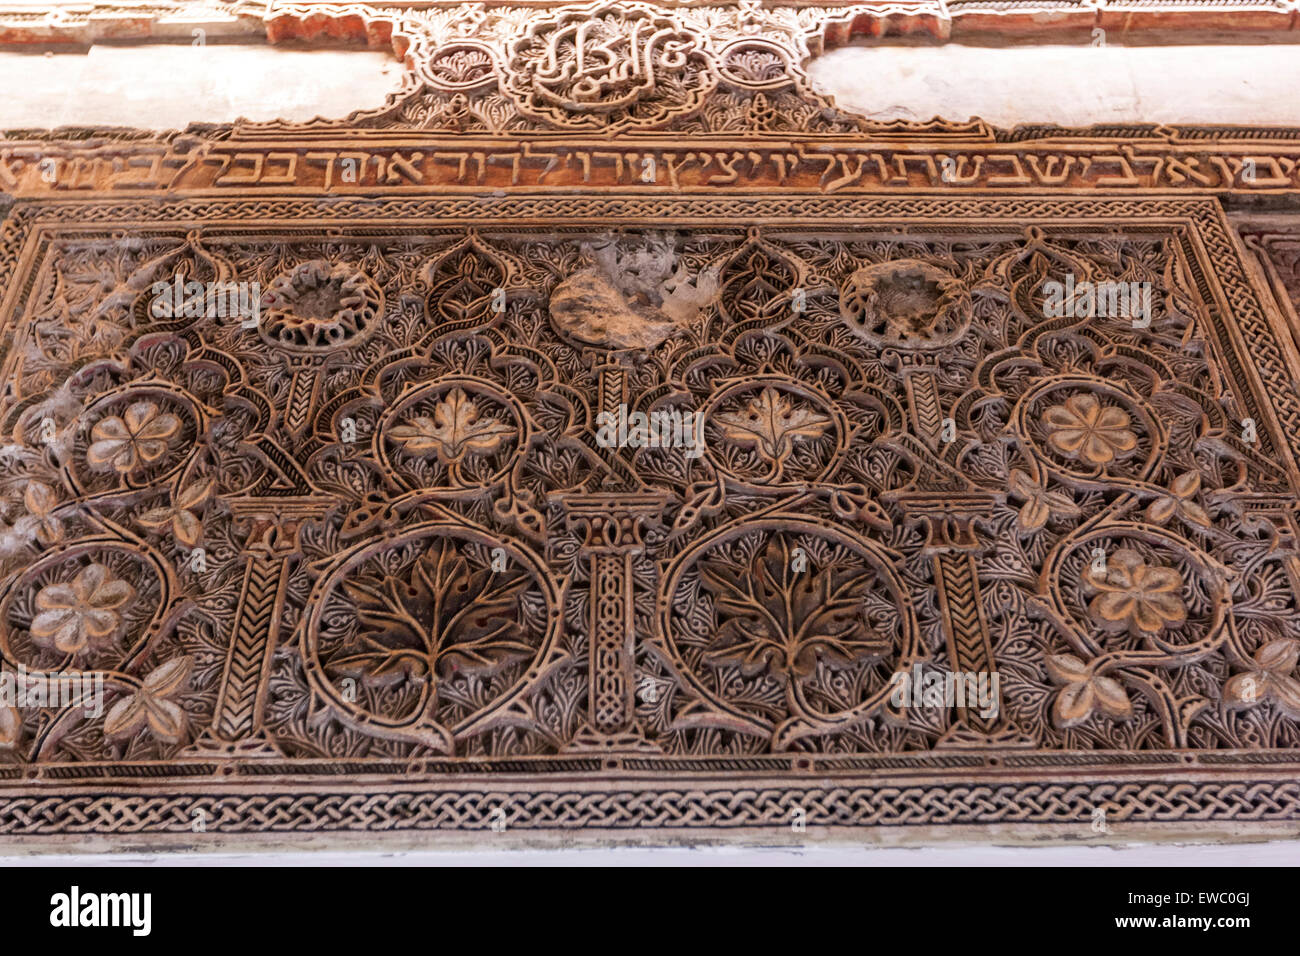 Raised stucco work in Synagogue of El Transito, Toledo Stock Photo